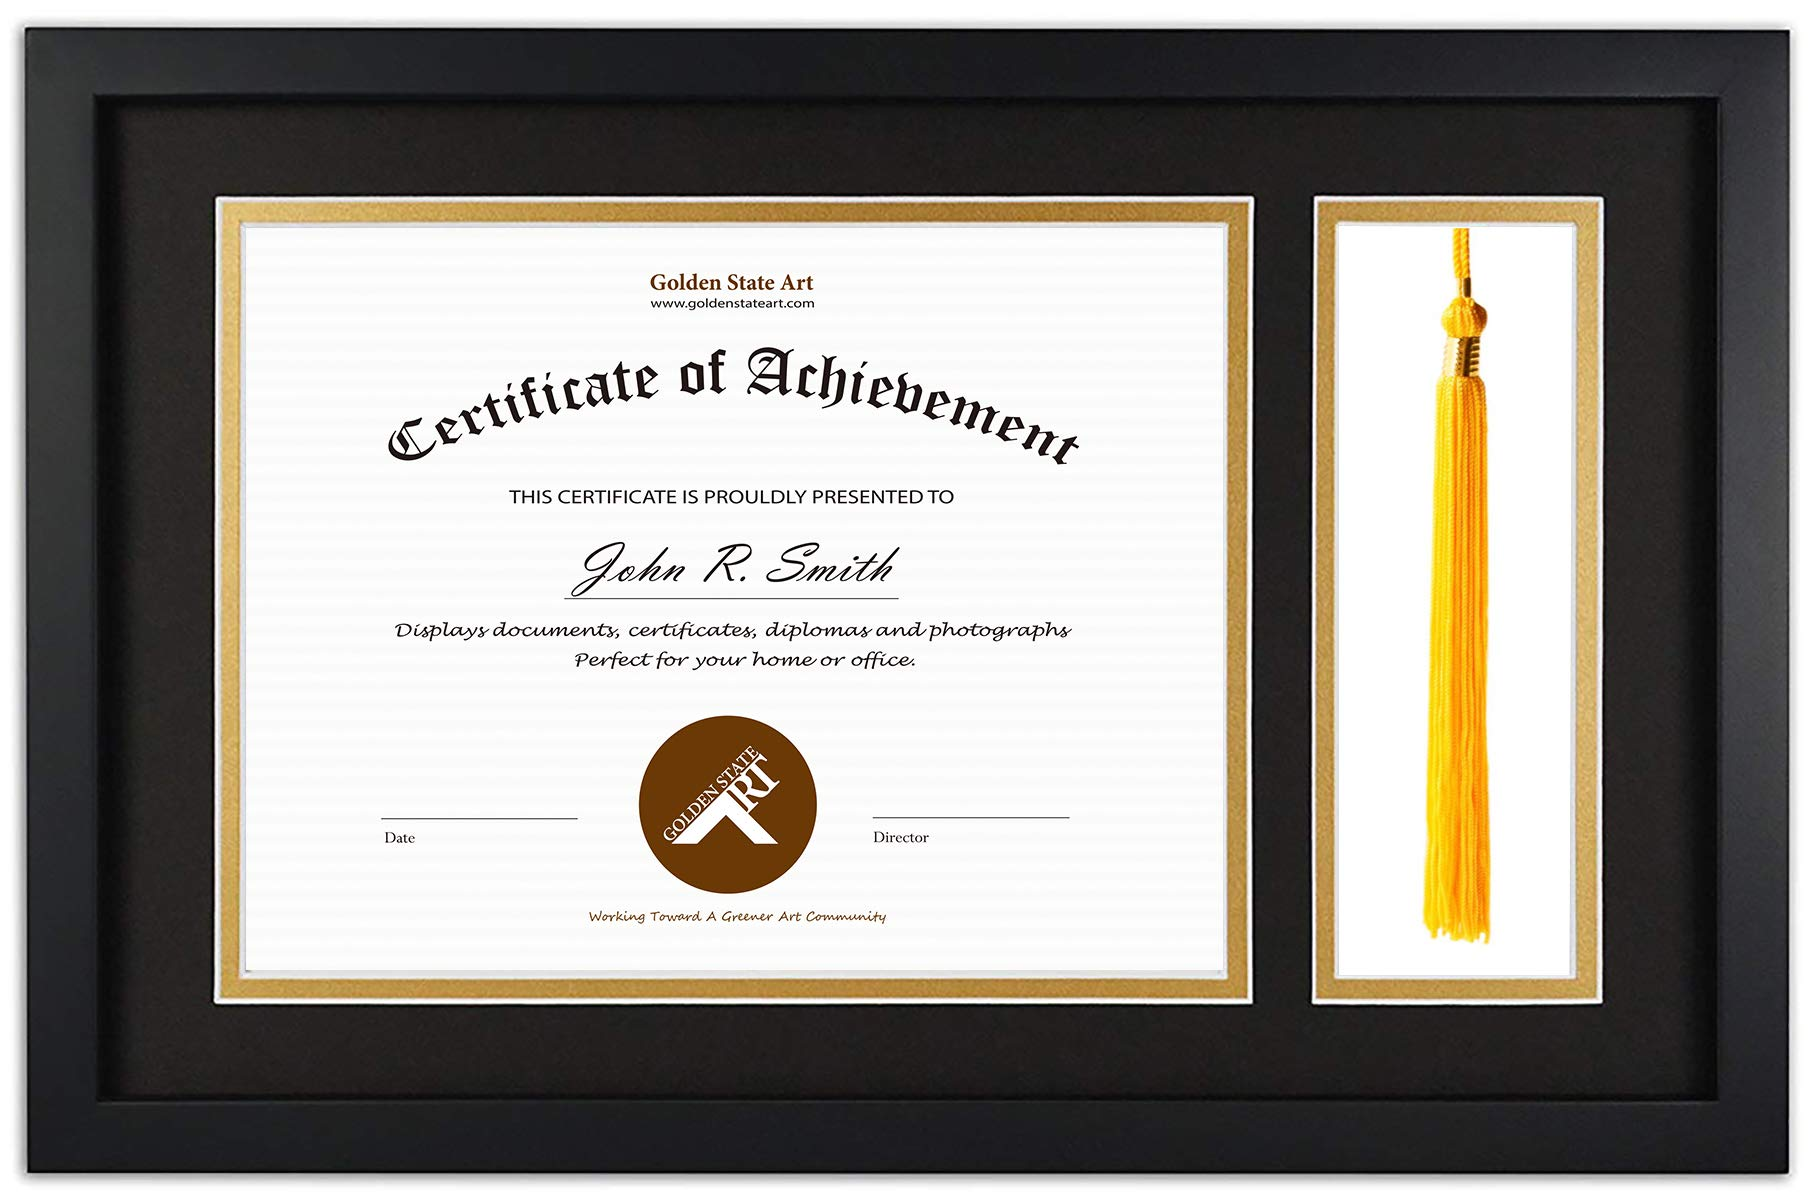 Golden State Art, Diploma Tassel Shadow Box 11x17.5 Frame for 8.5x11 Document/Certificate, with Double Mat (Black Over Gold), Tassel Holder & Real Glass, Black by Golden State Art